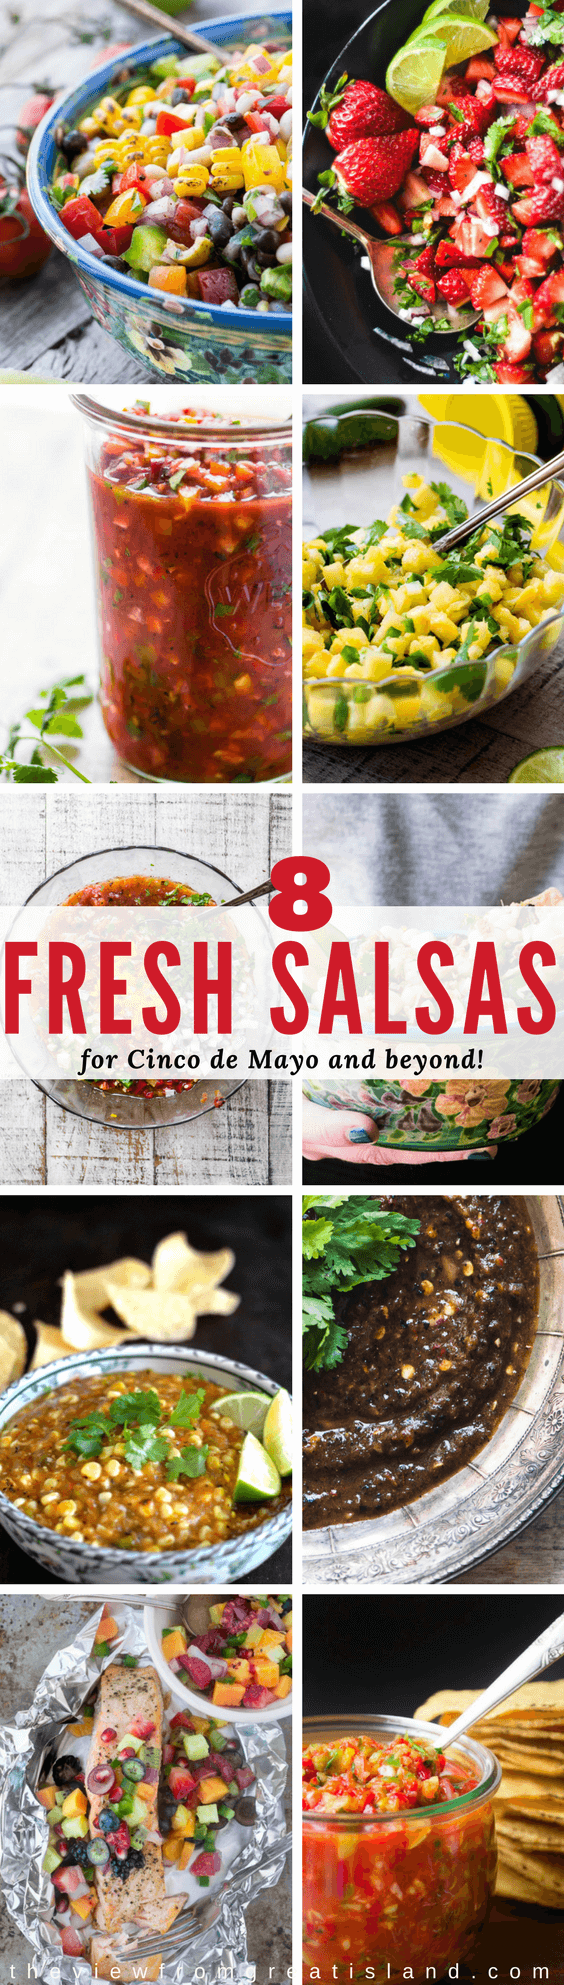 8 Fresh Salsas for Cinco de Mayo ~ celebrate the season with these fresh juicy salsas, just add friends, margaritas, and plenty of chips! #appetizer #salsa #mexican #chipsandsalsa #cowboycaviar #restaurantsalsa #cornsalsa #pineapplesalsa #strawberrysalsa #salsanegra #glutenfree #summer #fruitsalsa